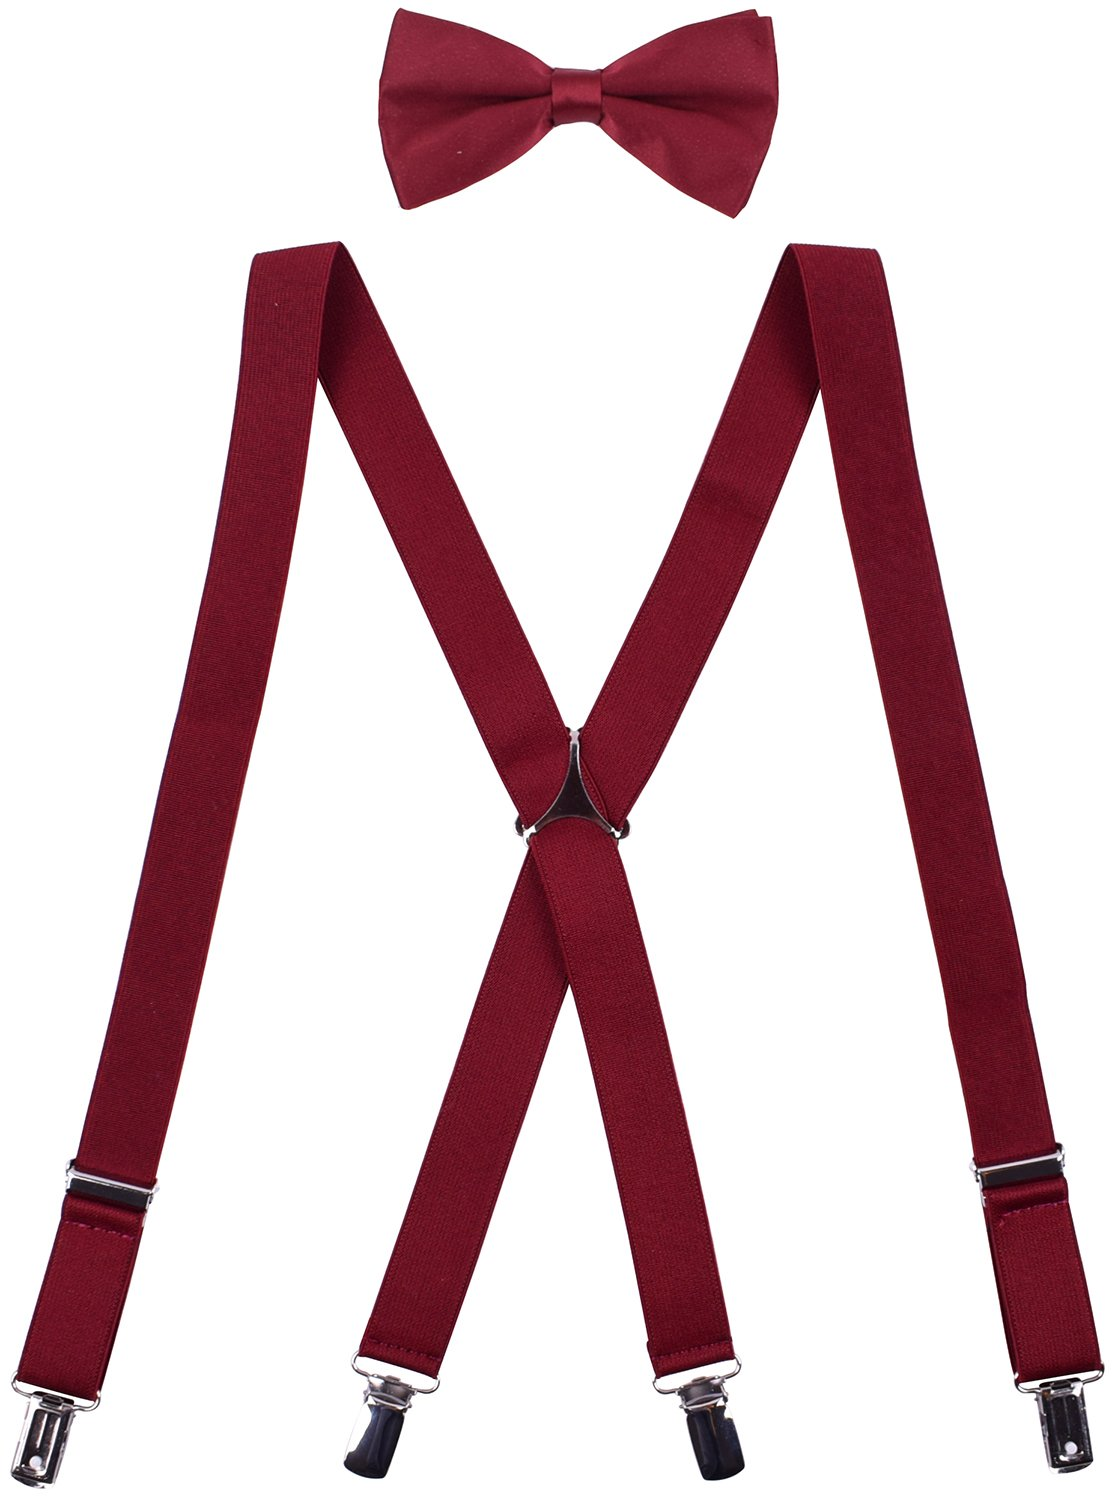 WDSKY Men's Clip on Suspenders and Bow Tie Set Adjustable X Back Burgundy by WDSKY